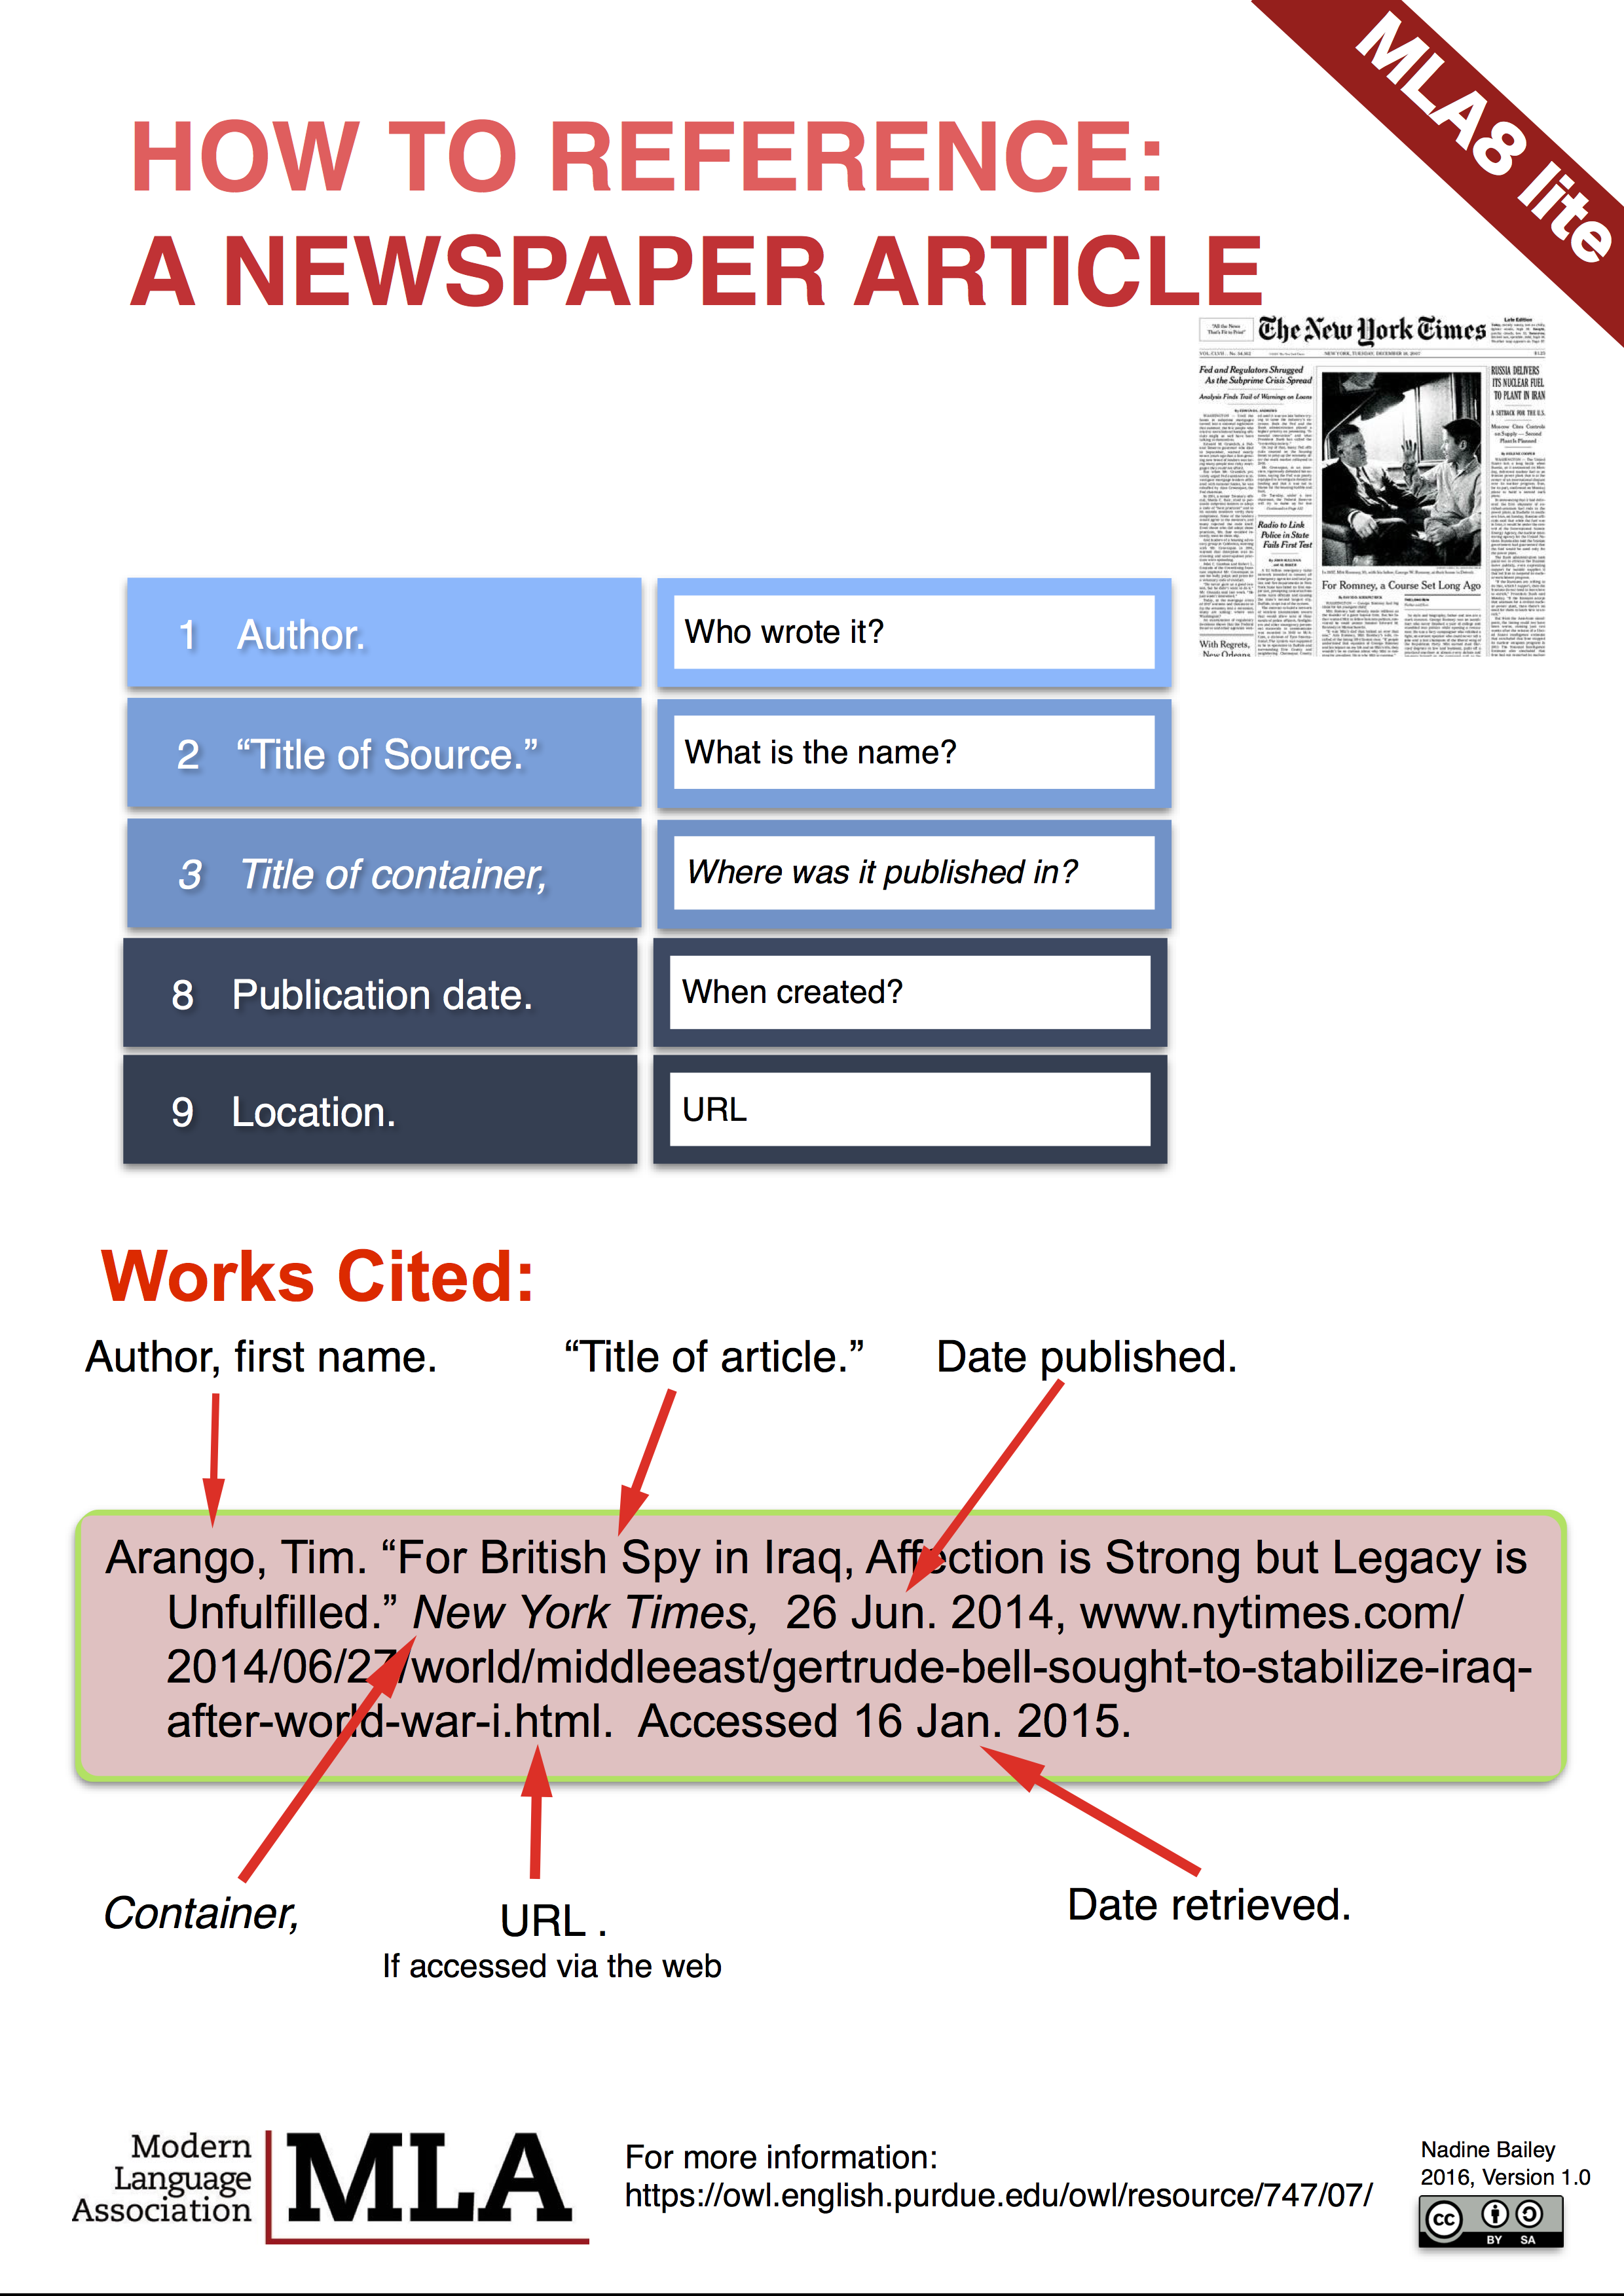 Mla8 Lite Guide Libguide At Canadian International School Singapore Newspaper Article How To In Text Citation A Website Without Author